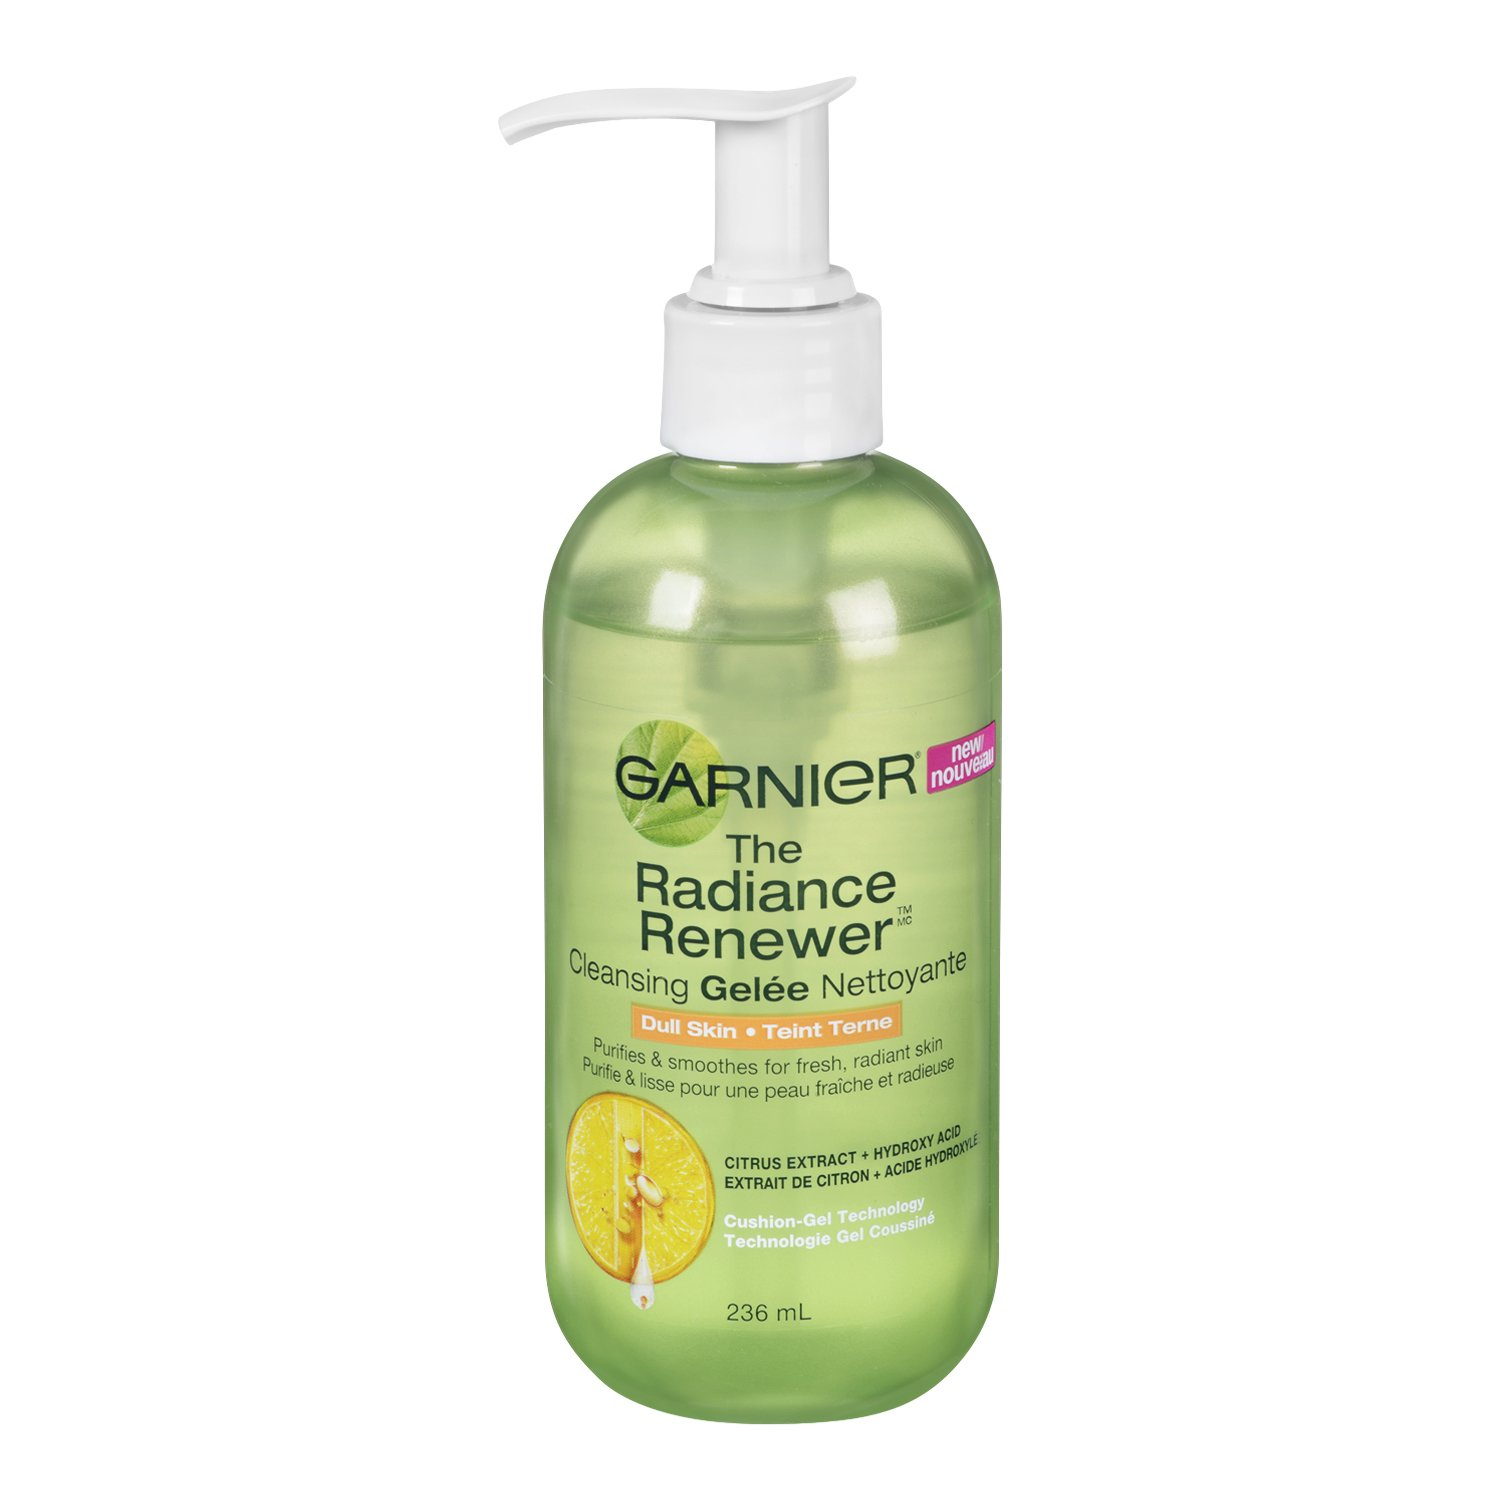 Garnier Radiance Renewer Cleansing Gelée for Dull Skin. Citrus Extract and Hydroxyl Acid, Oil Free, 236 ml 20JN01